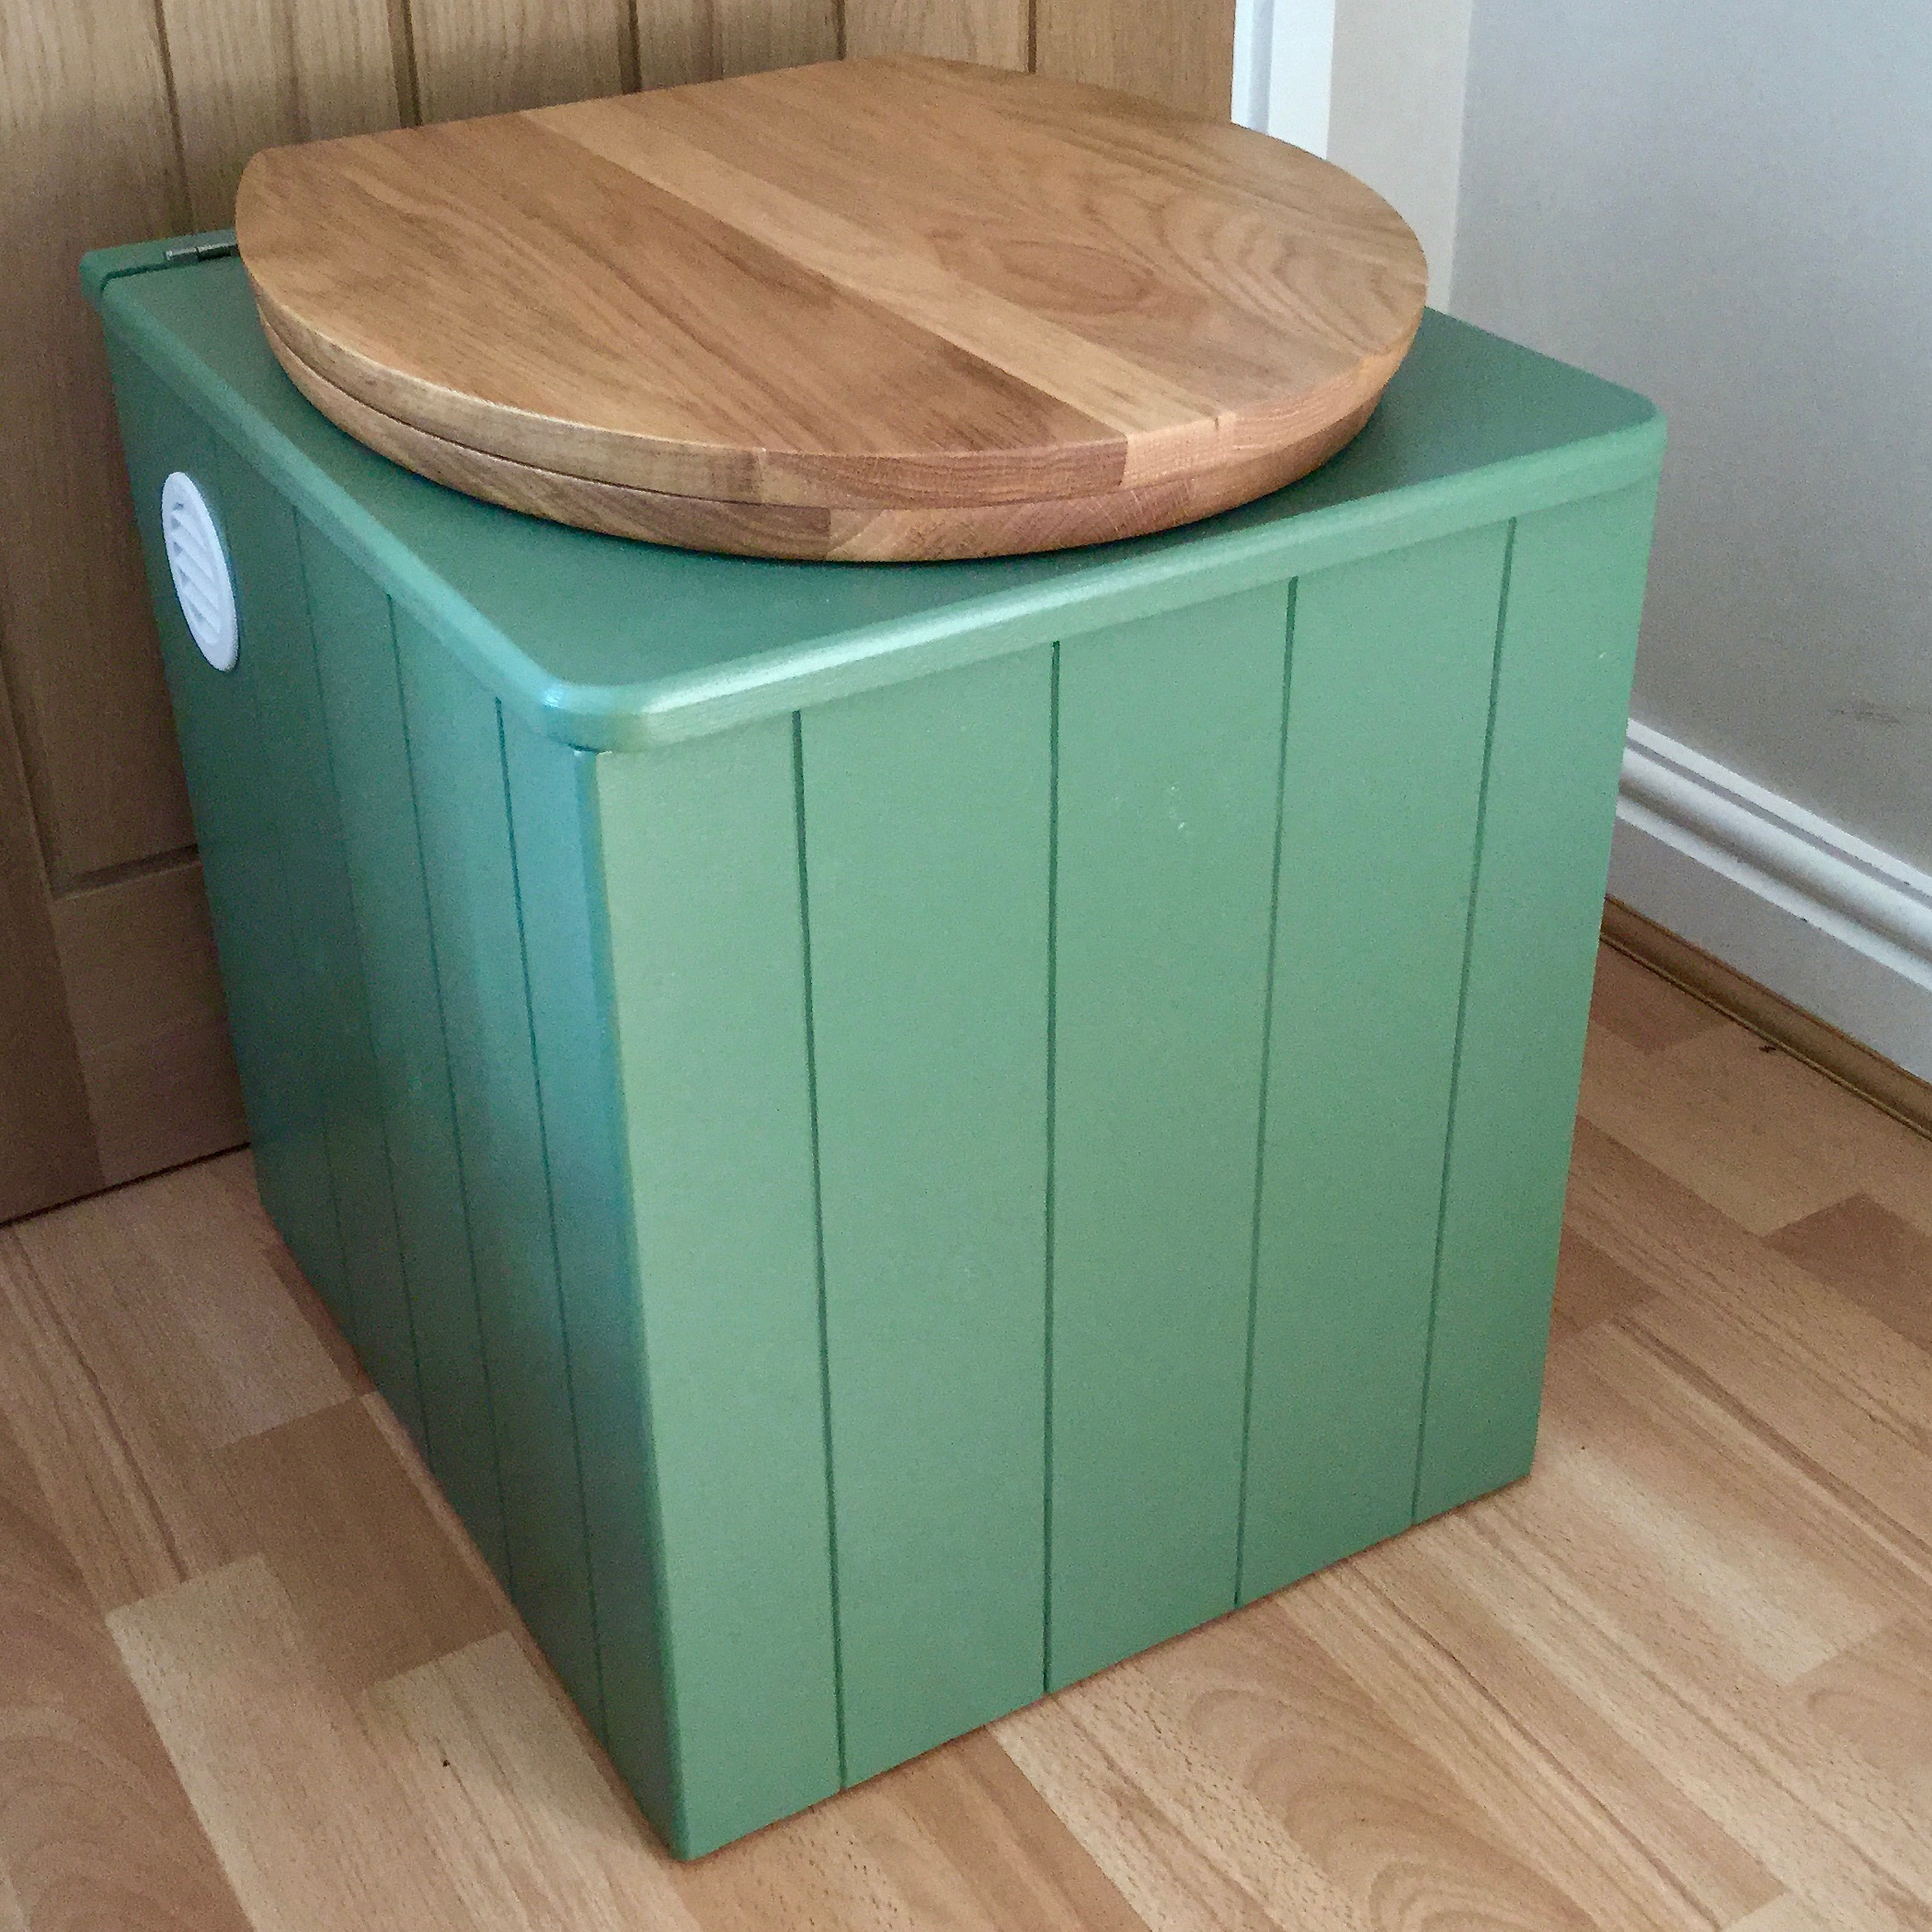 Eco-Loo Nomad self contained compost toilet